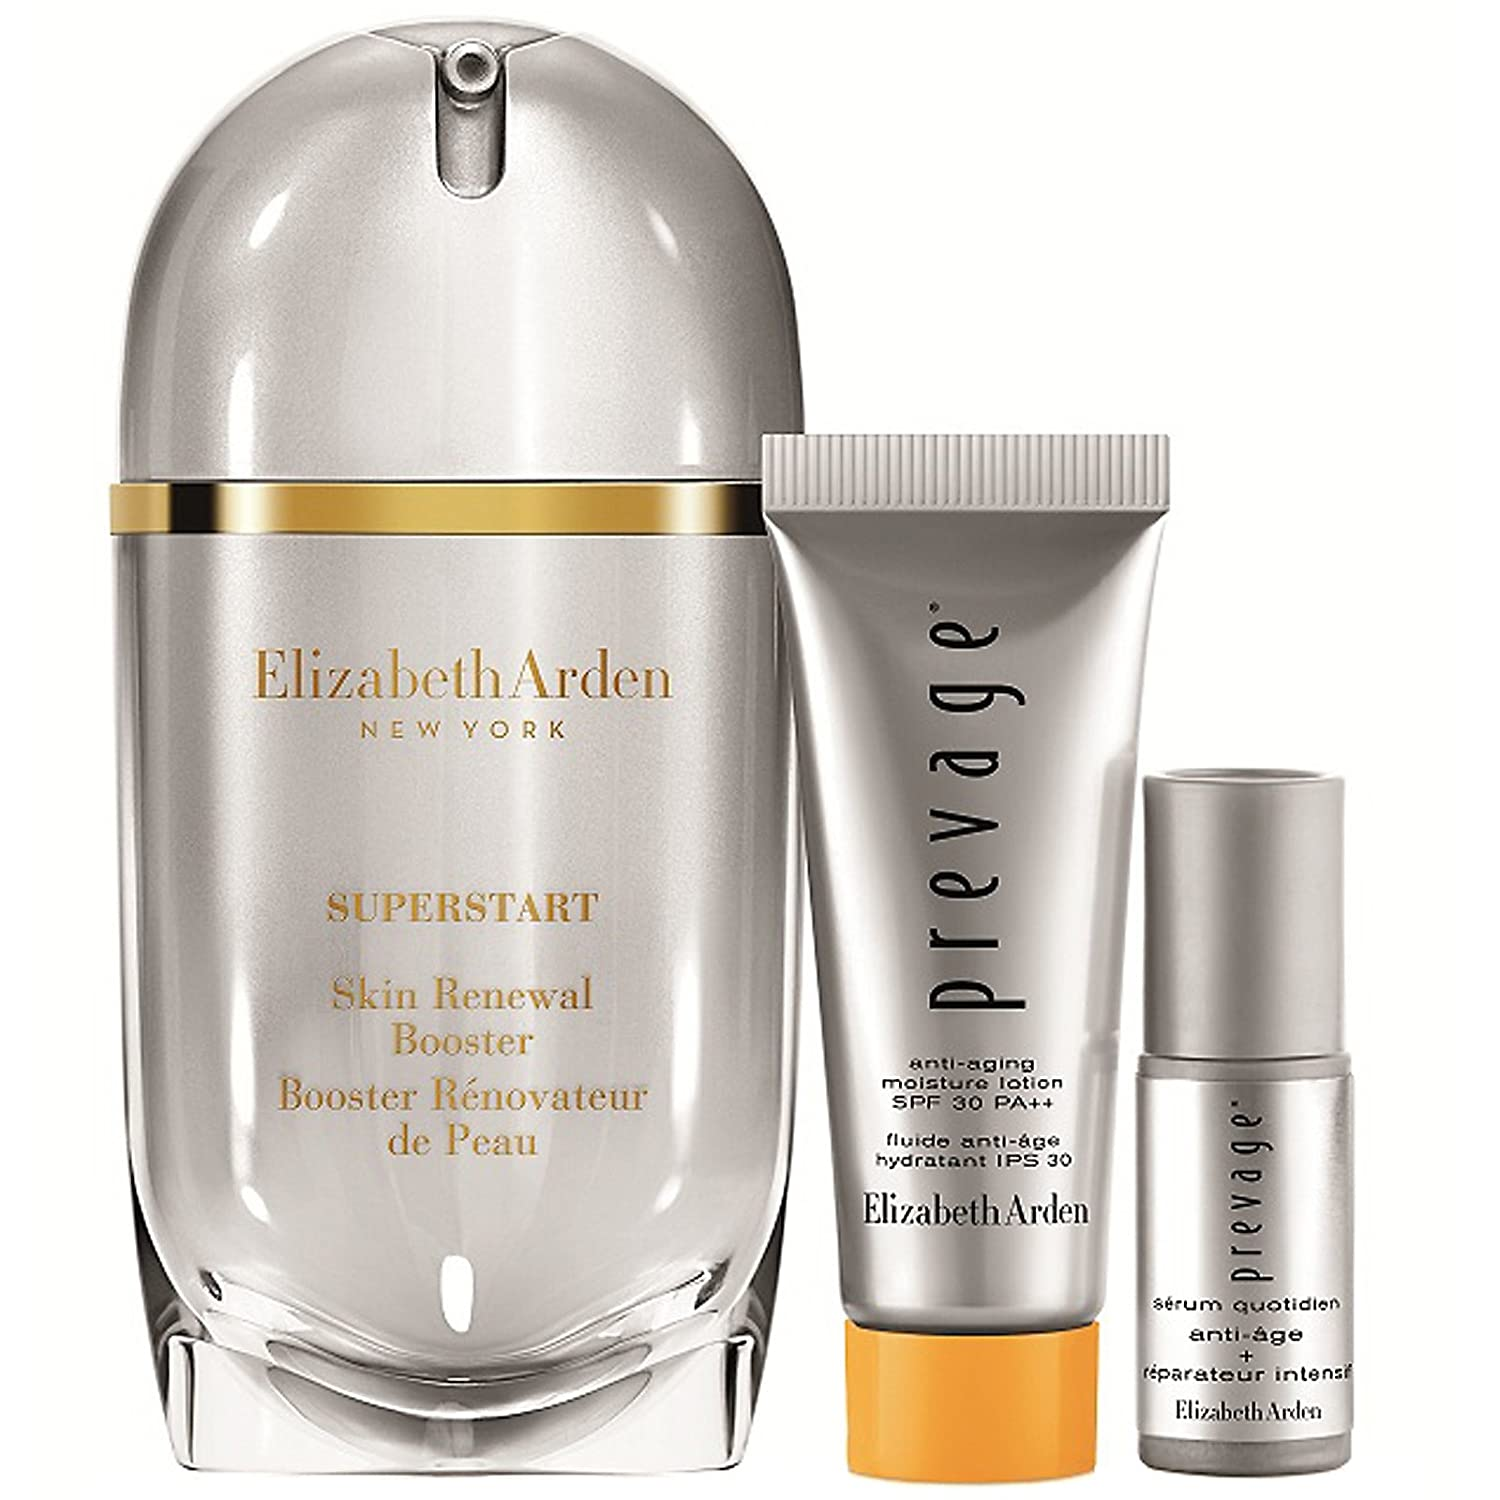 Boost & Protect with superstart prevage